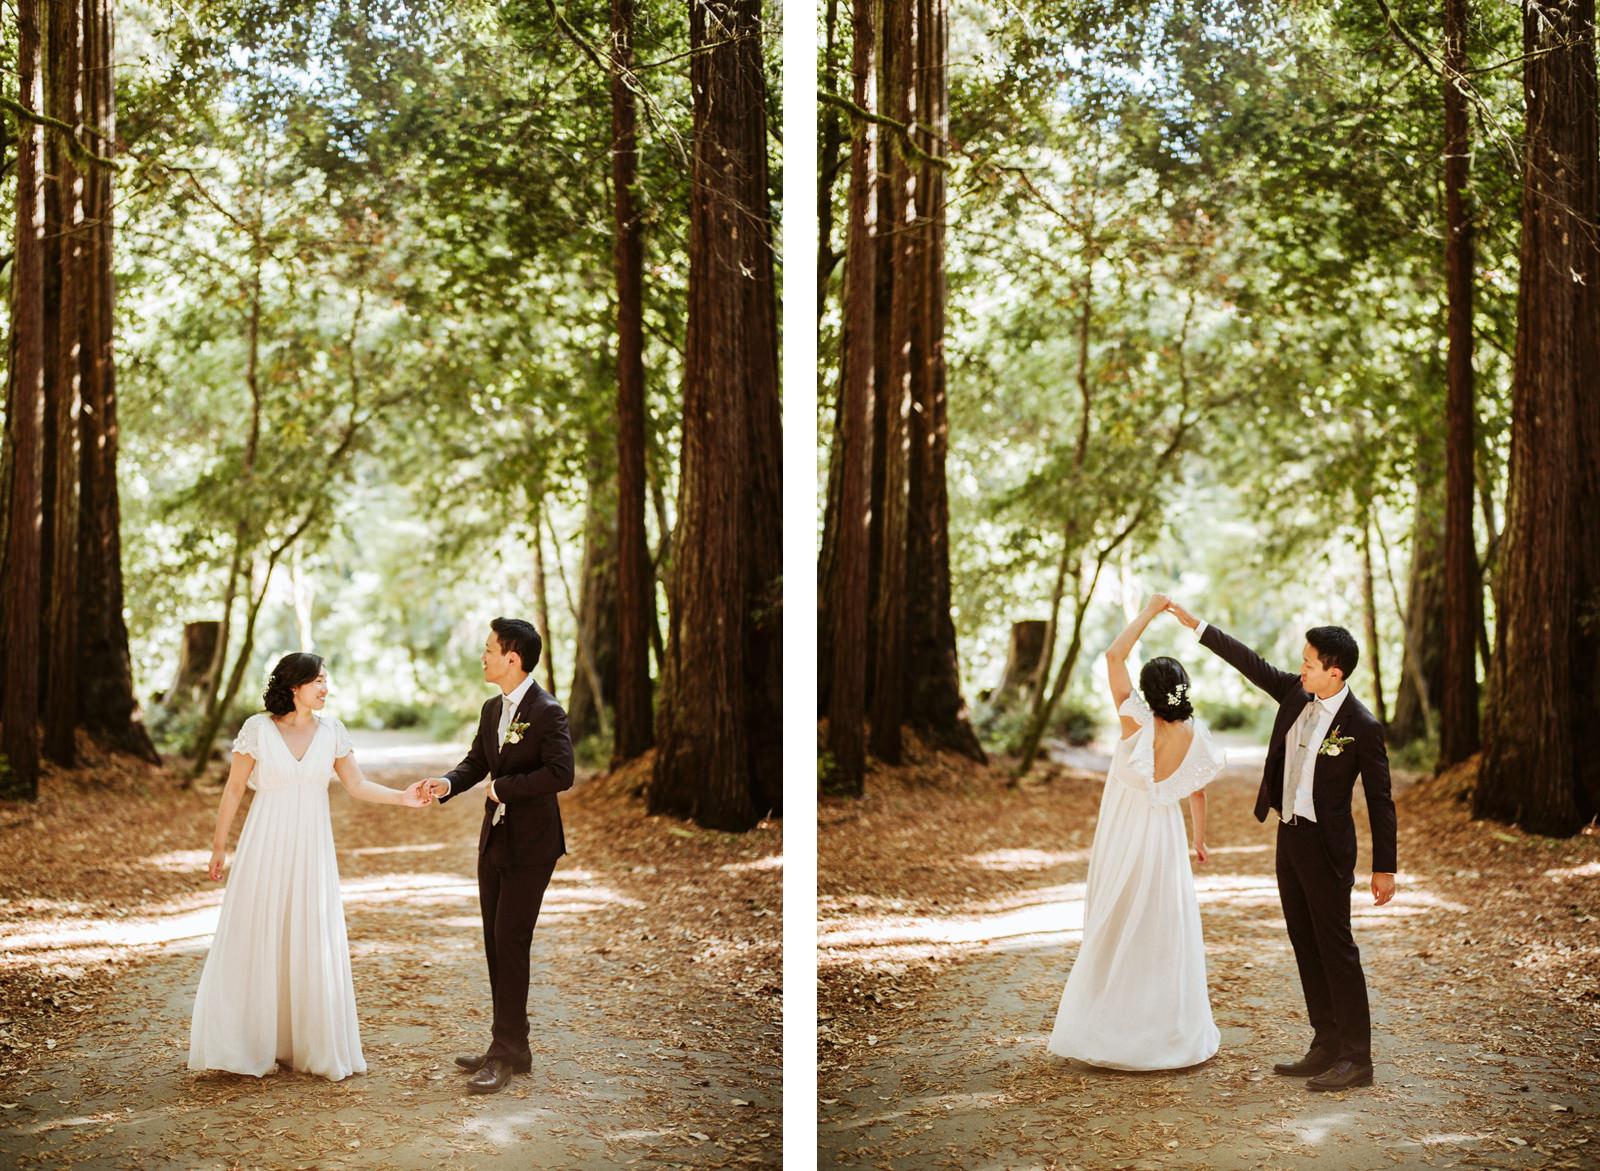 kimclay-blog-049 REDWOOD FOREST WEDDING